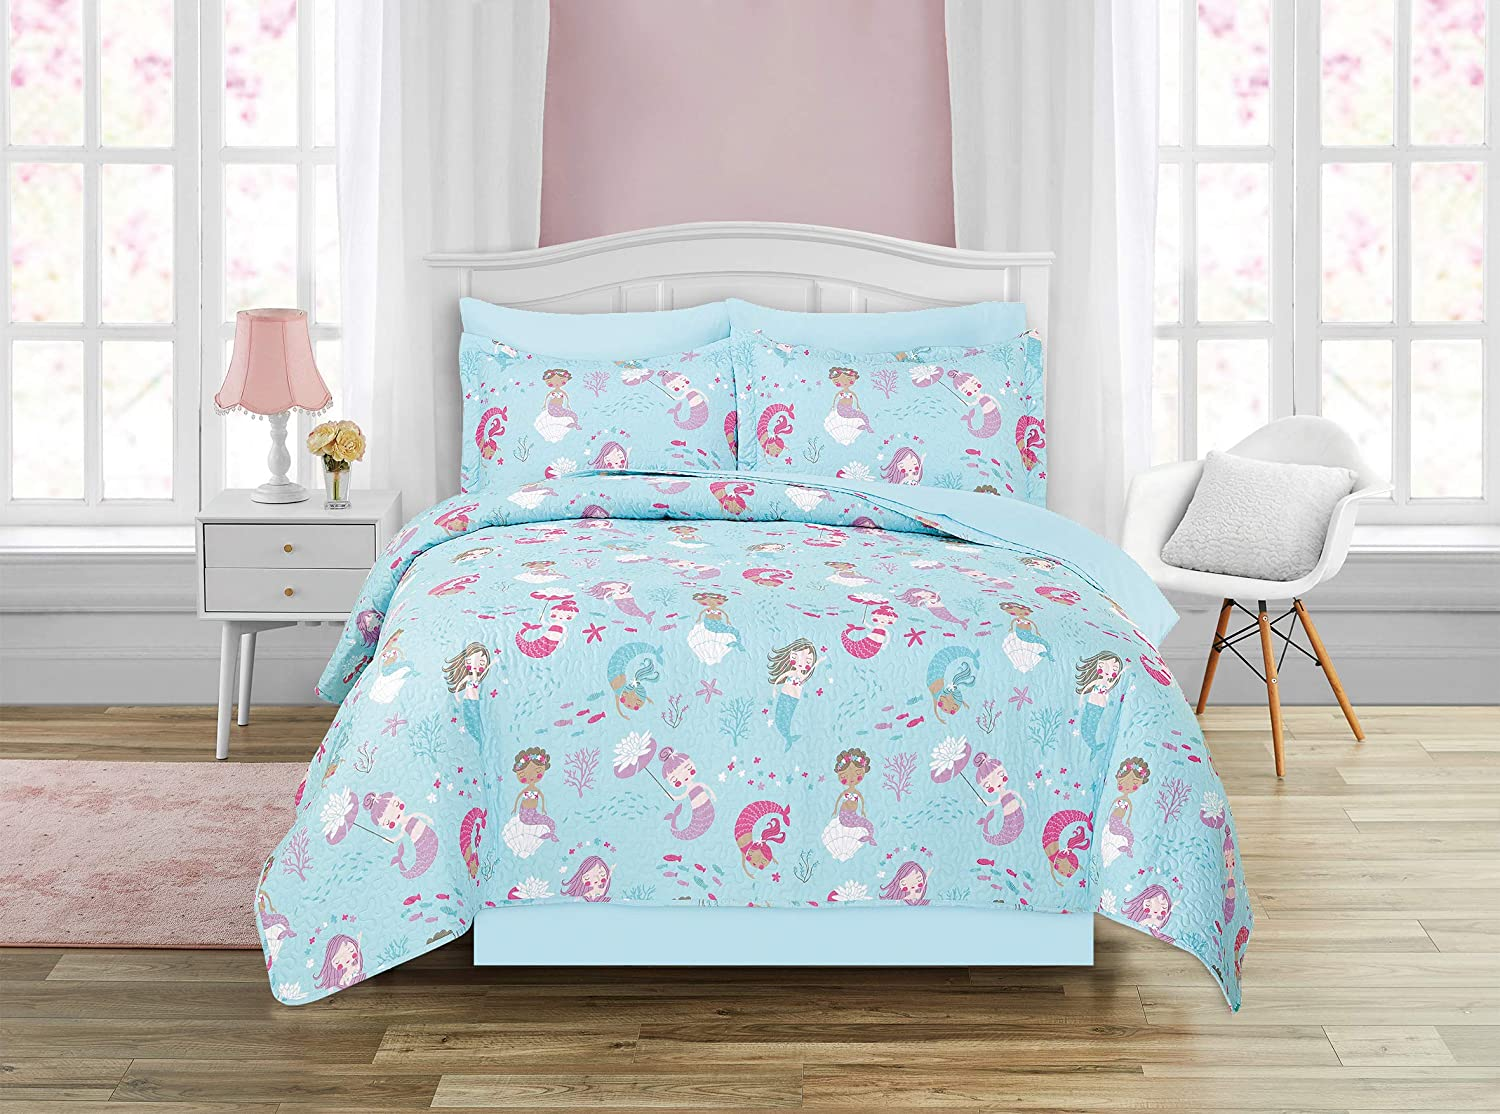 Kids Zone Home Linen 7pc Full Teens Reservation Girls Bedspread Super beauty product restock quality top Quilt Size M